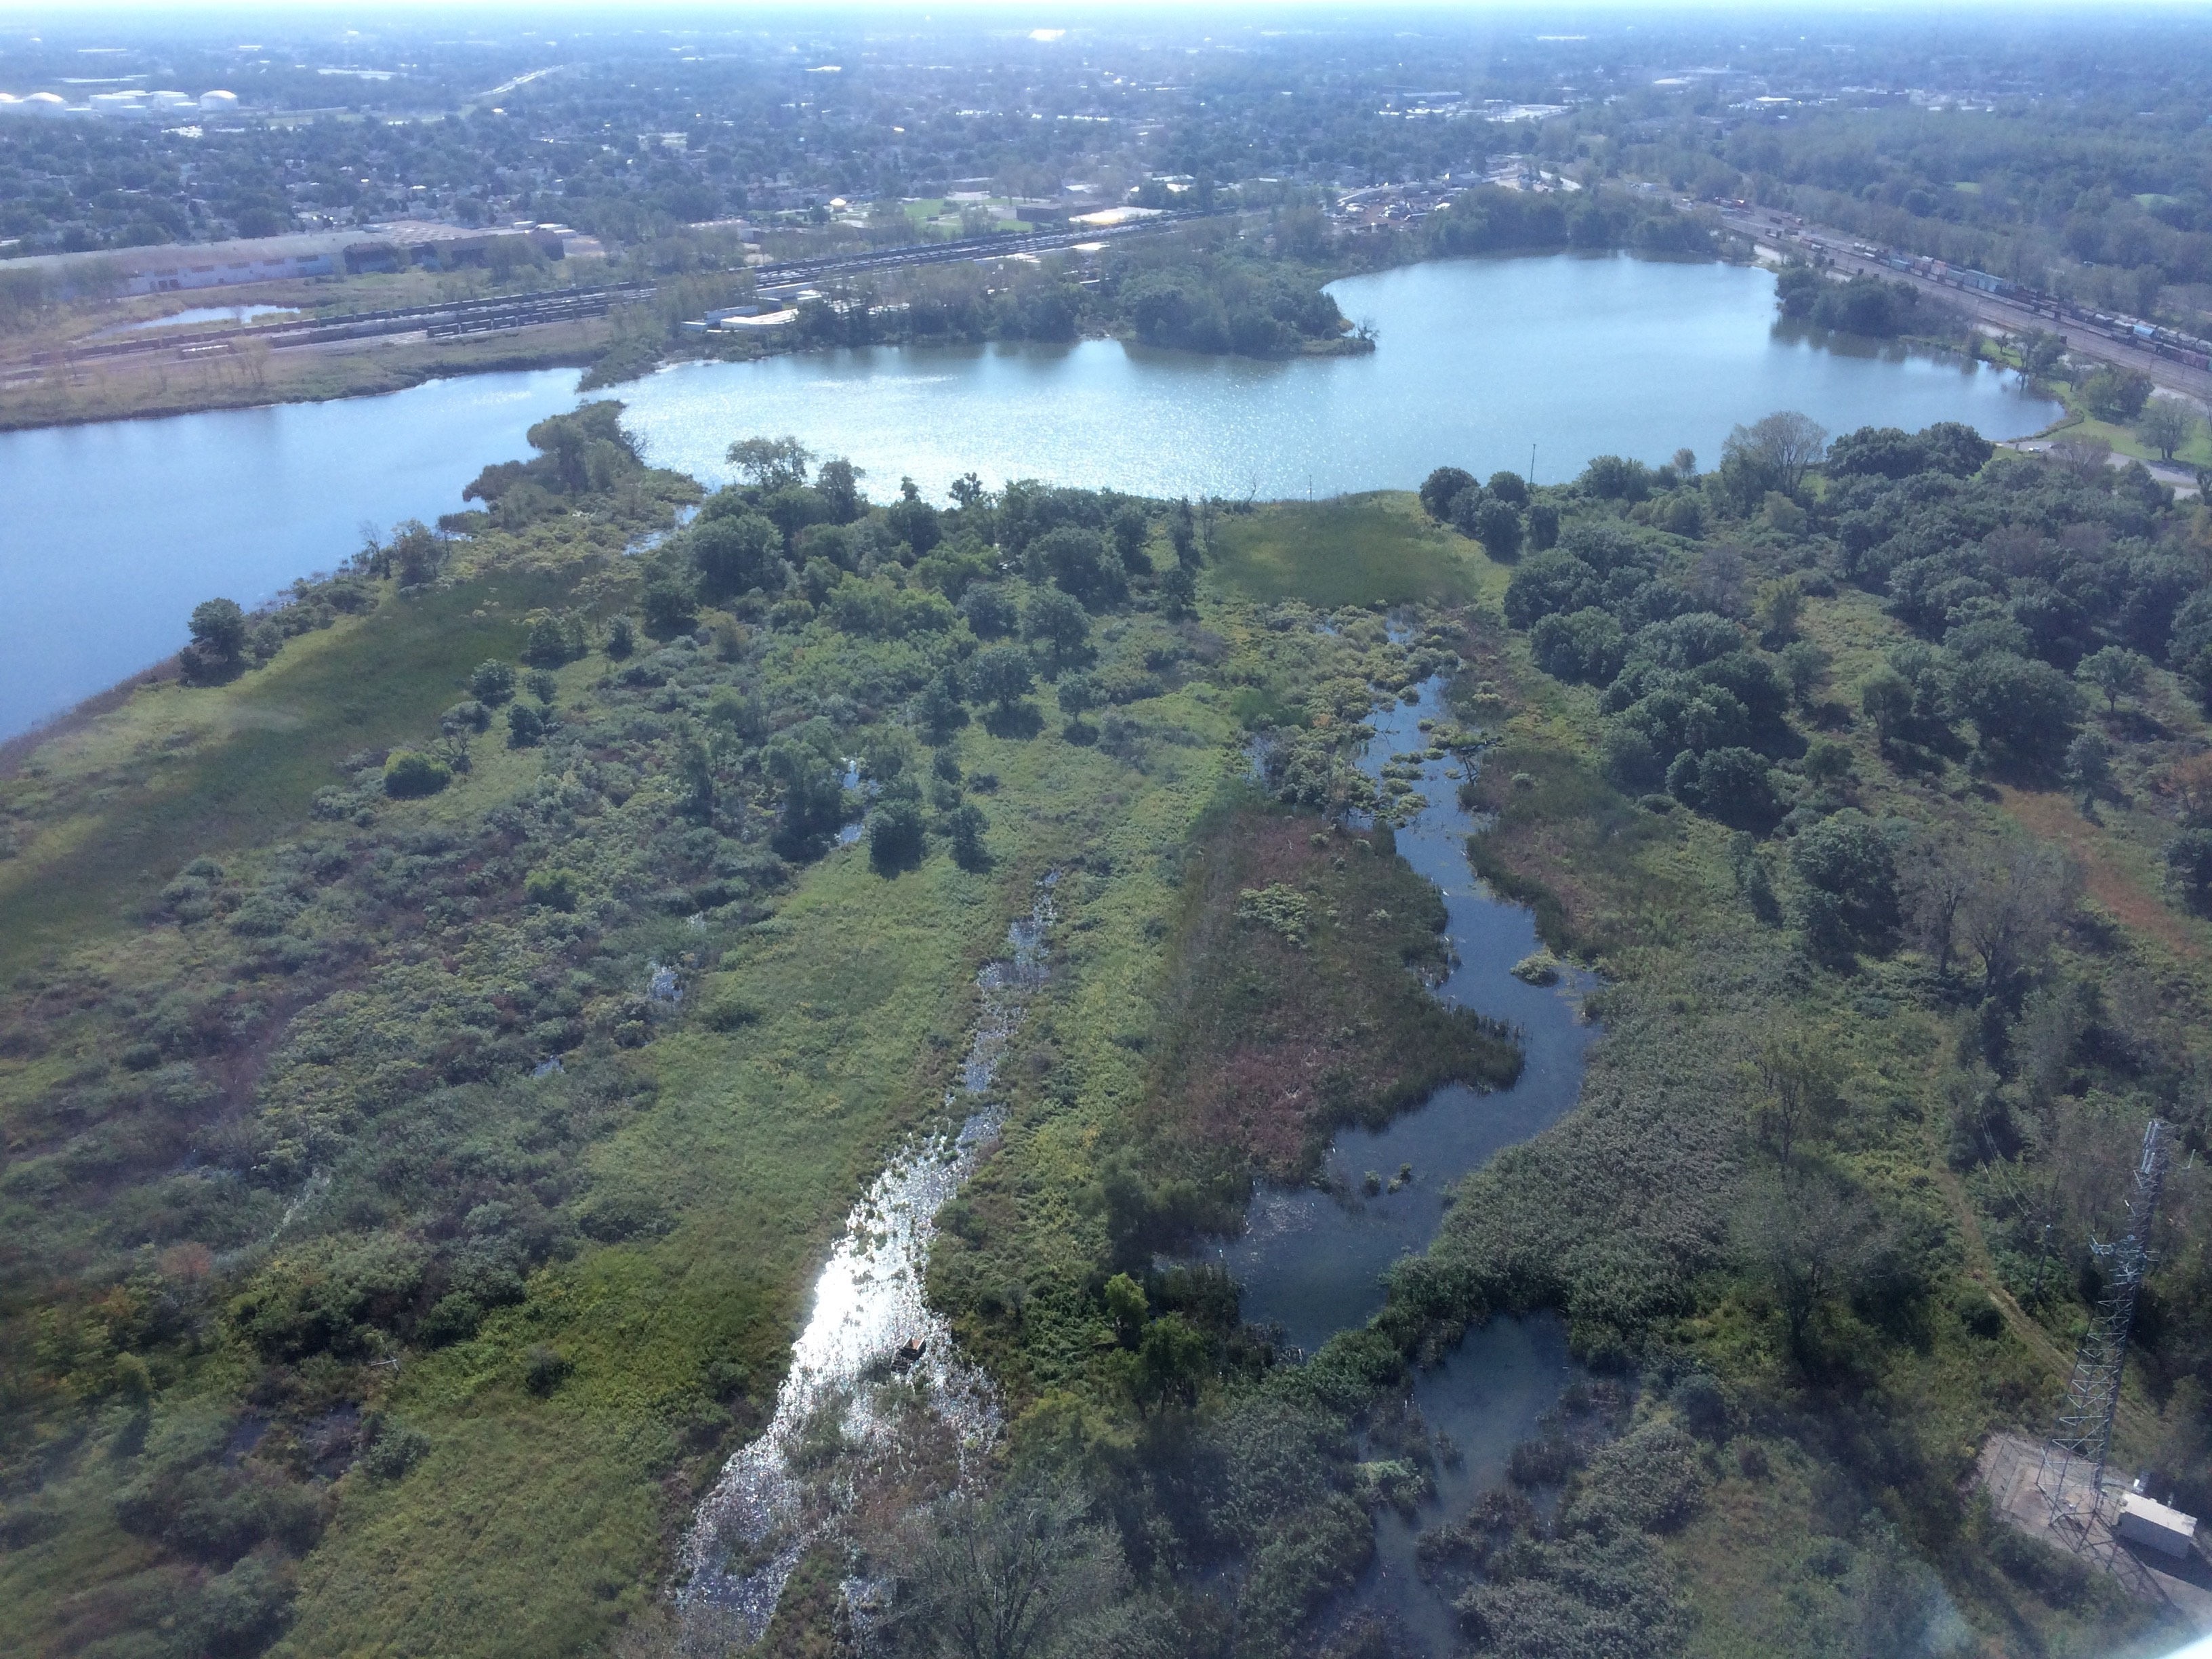 A project restoring over 100 acres of rare marsh, dune and swale habitat across southeast Chicago was awarded $1 million.